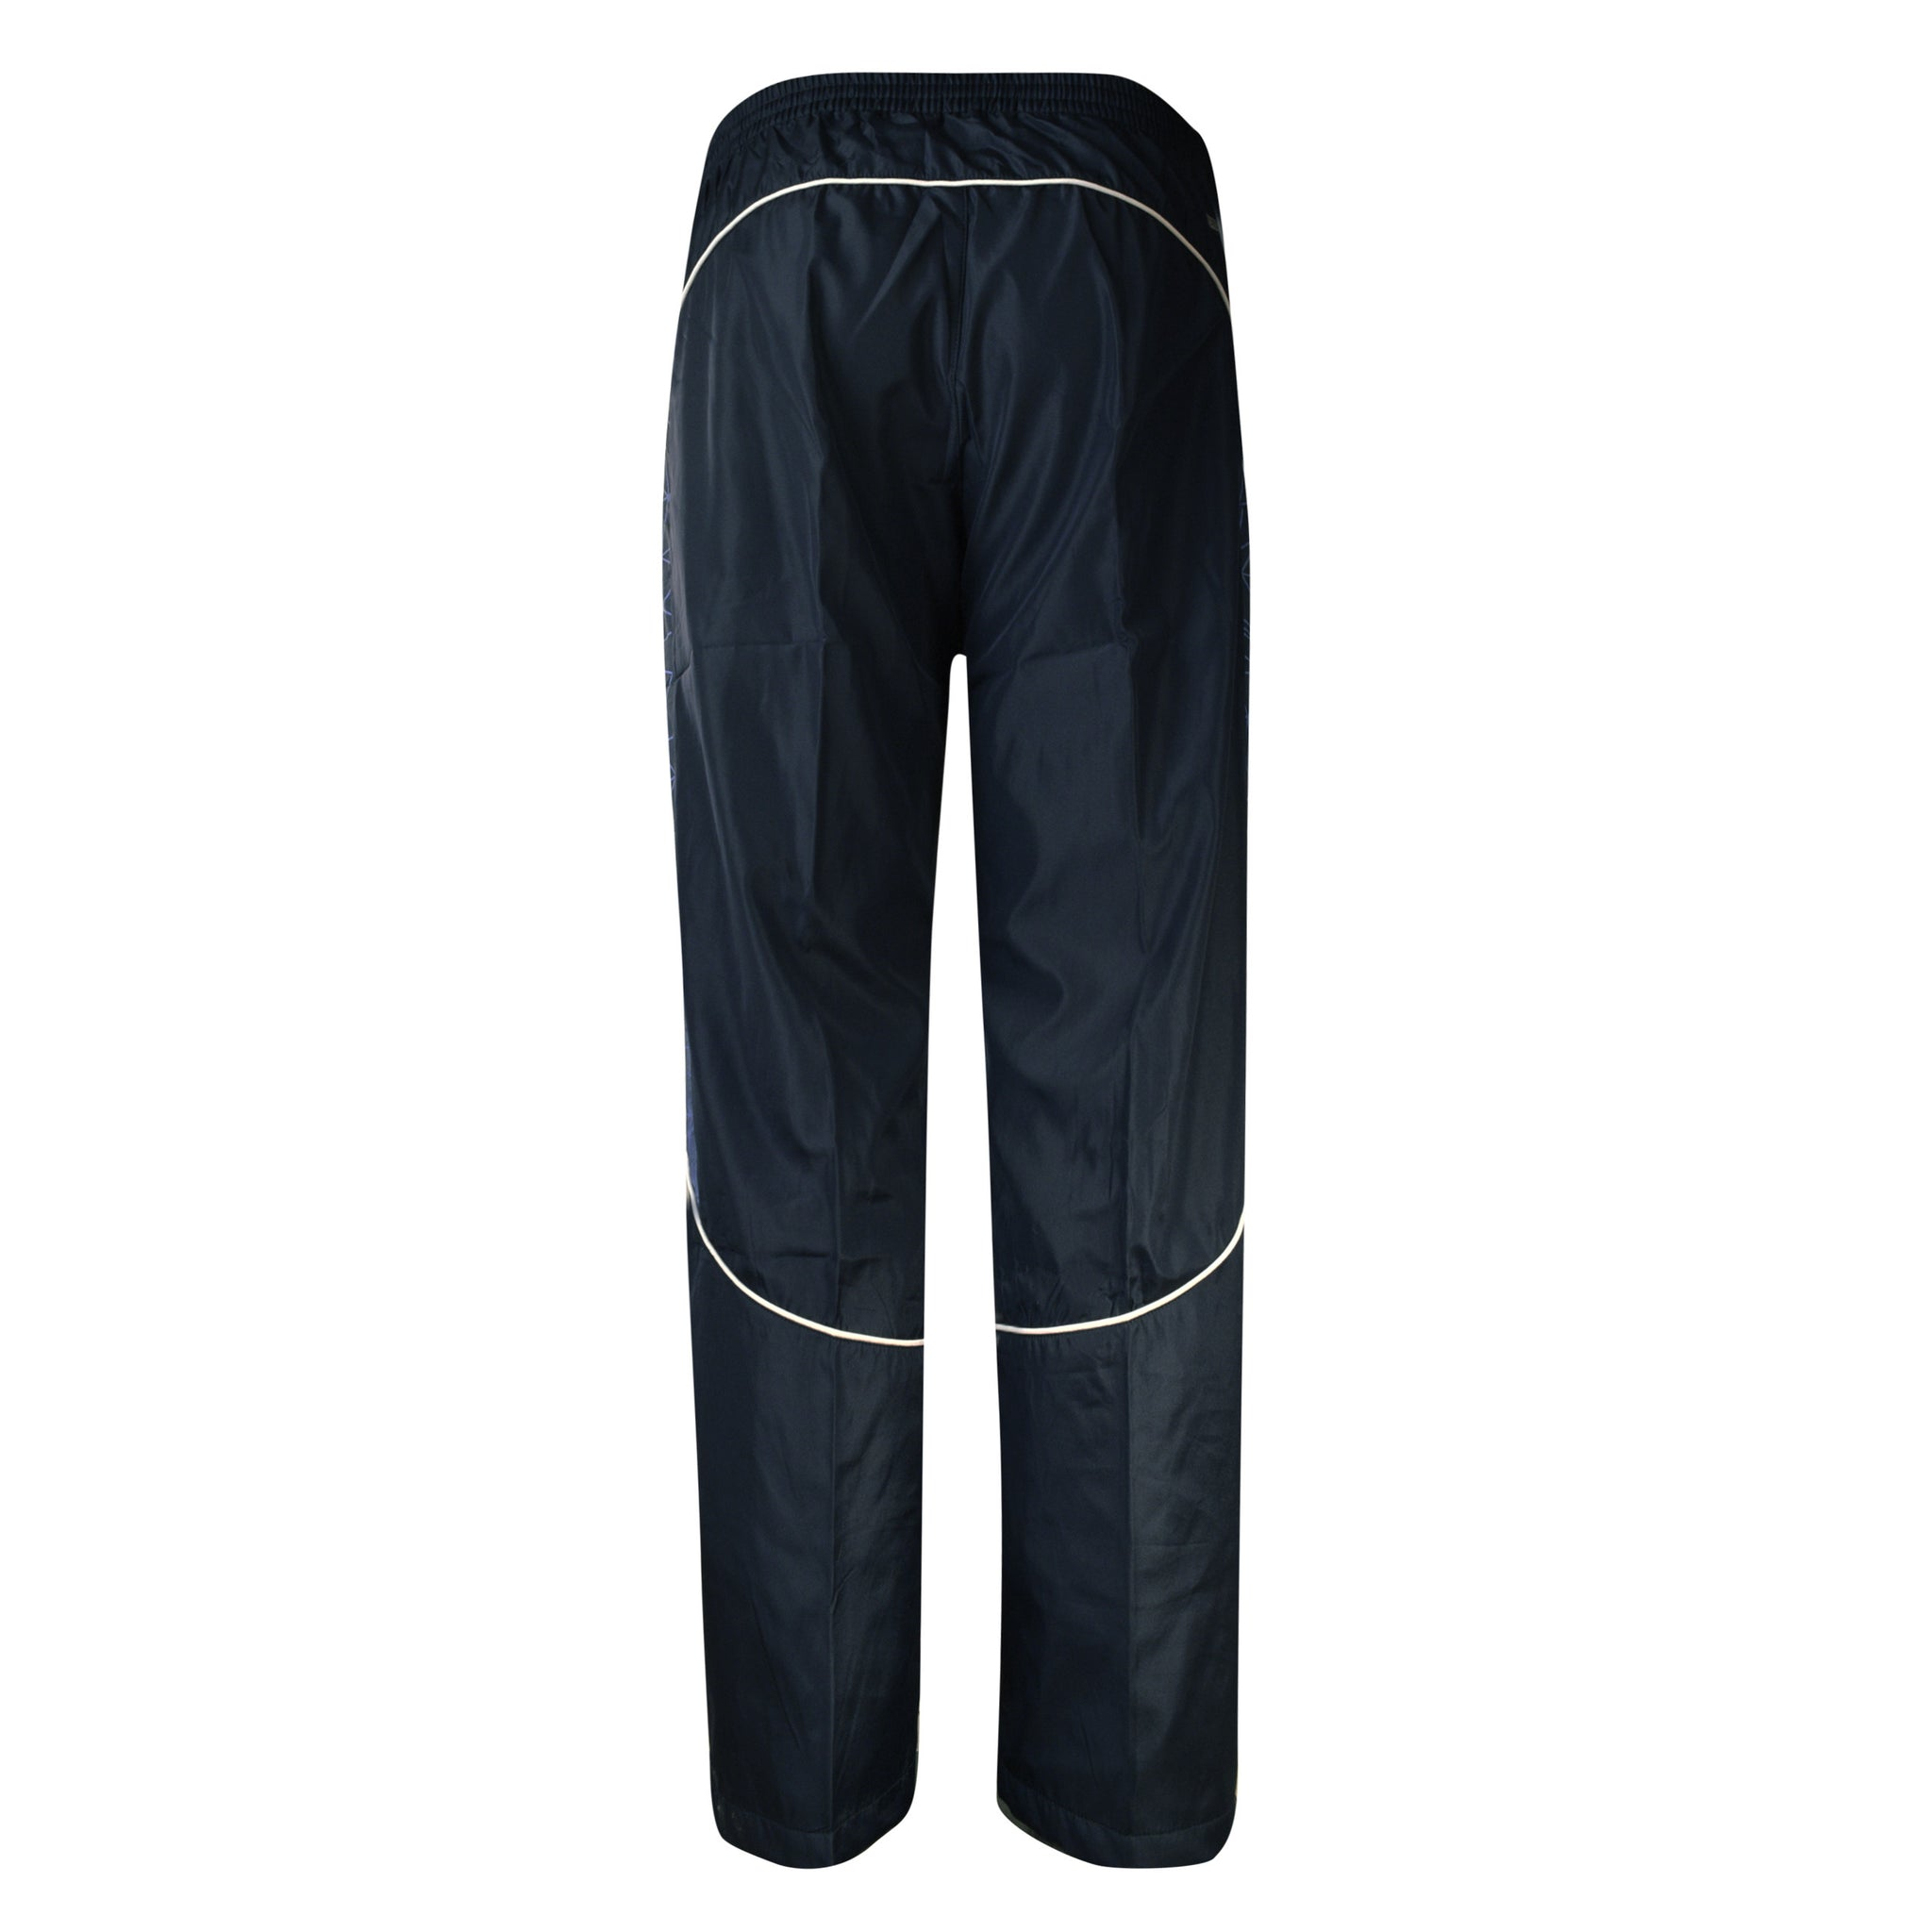 Pants Caballero Performance PA-027-PFC